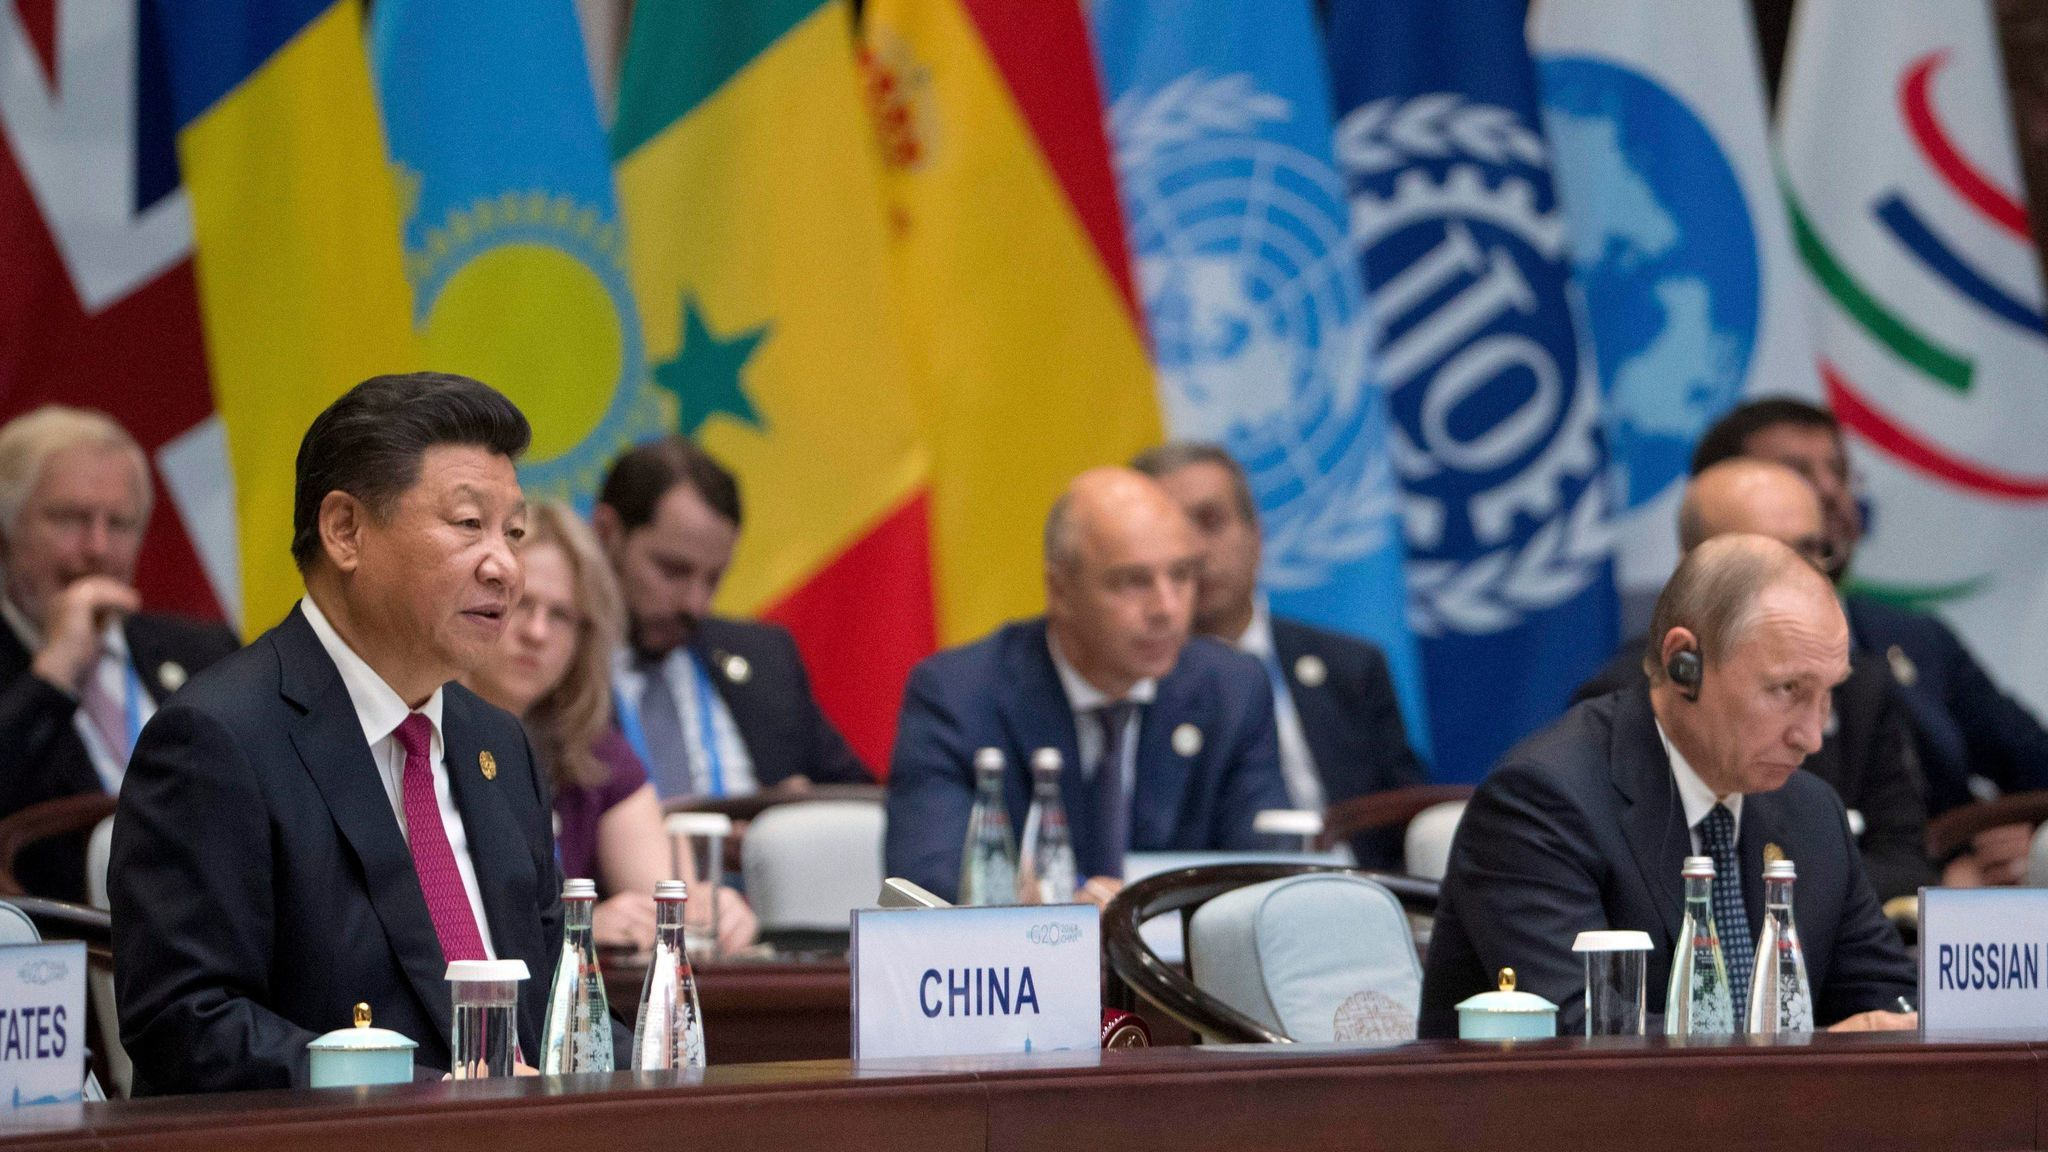 Along with the United States, Russia and China are major players in the world of cyber attacks. Here, Russian President Vladimir Putin listens as Chinese President Xi Jinping speaks during the G20 Summit in Hangzhou, China, on Sept. 4, 2016.